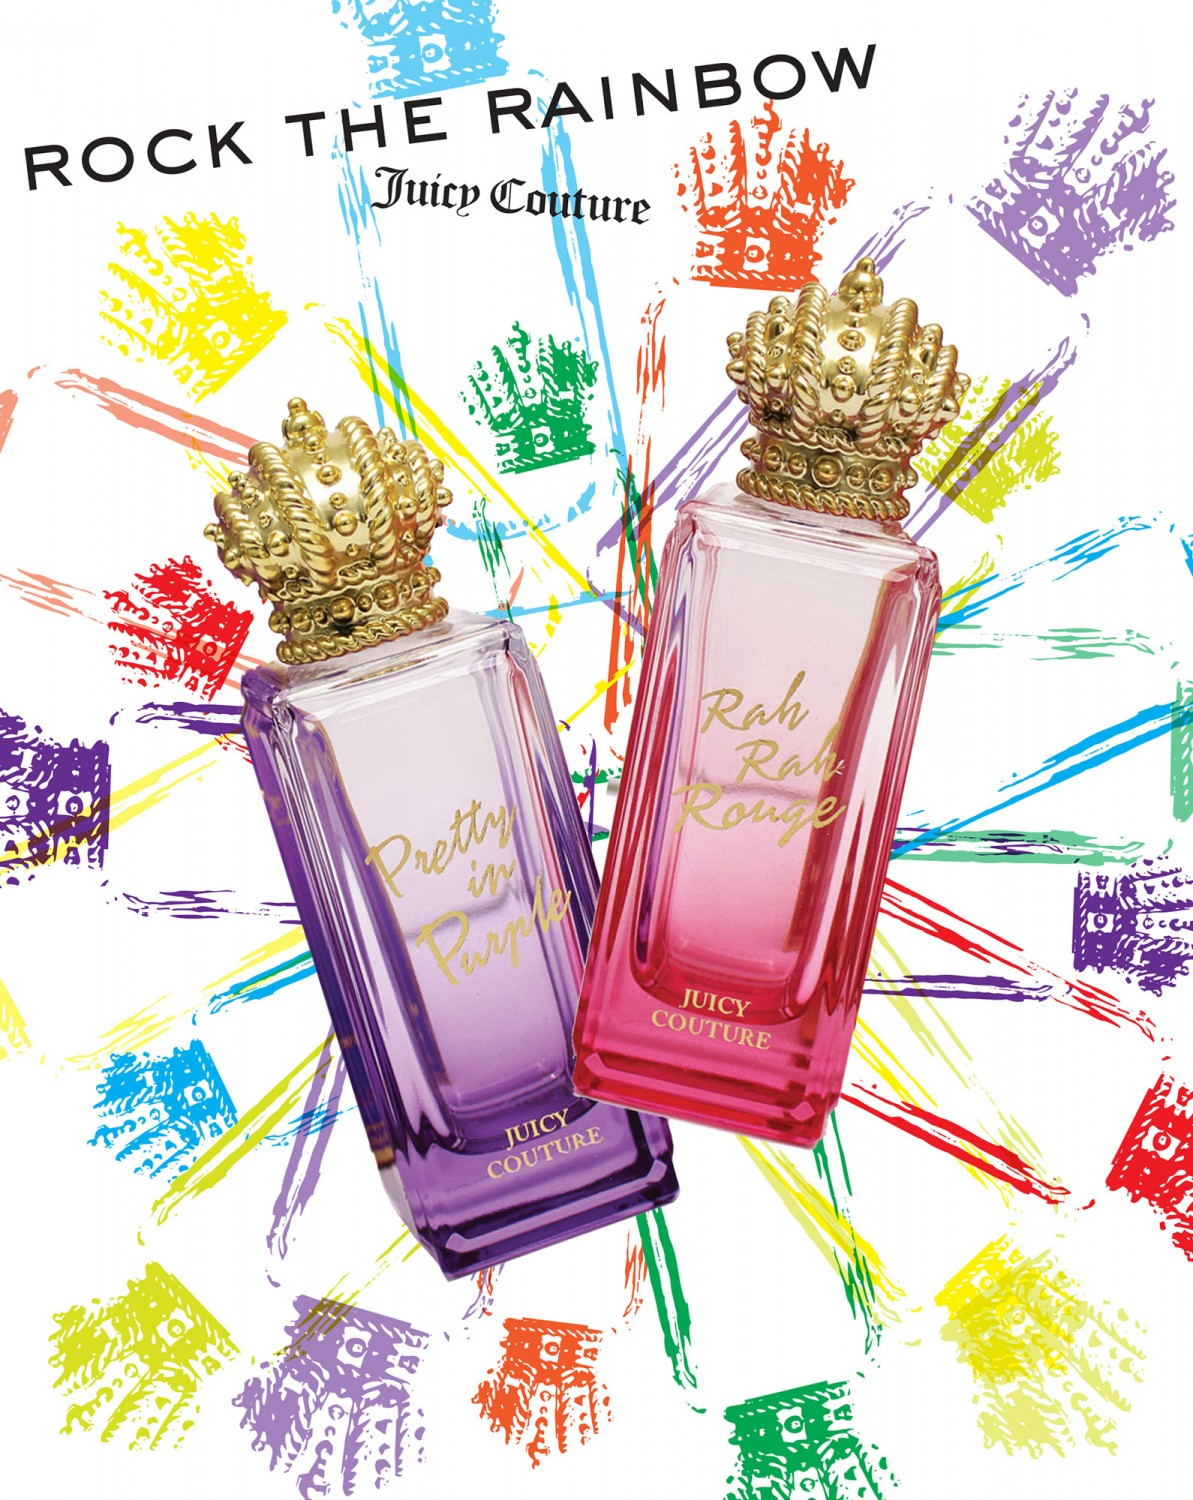 Juicy Couture Rock The Rainbow